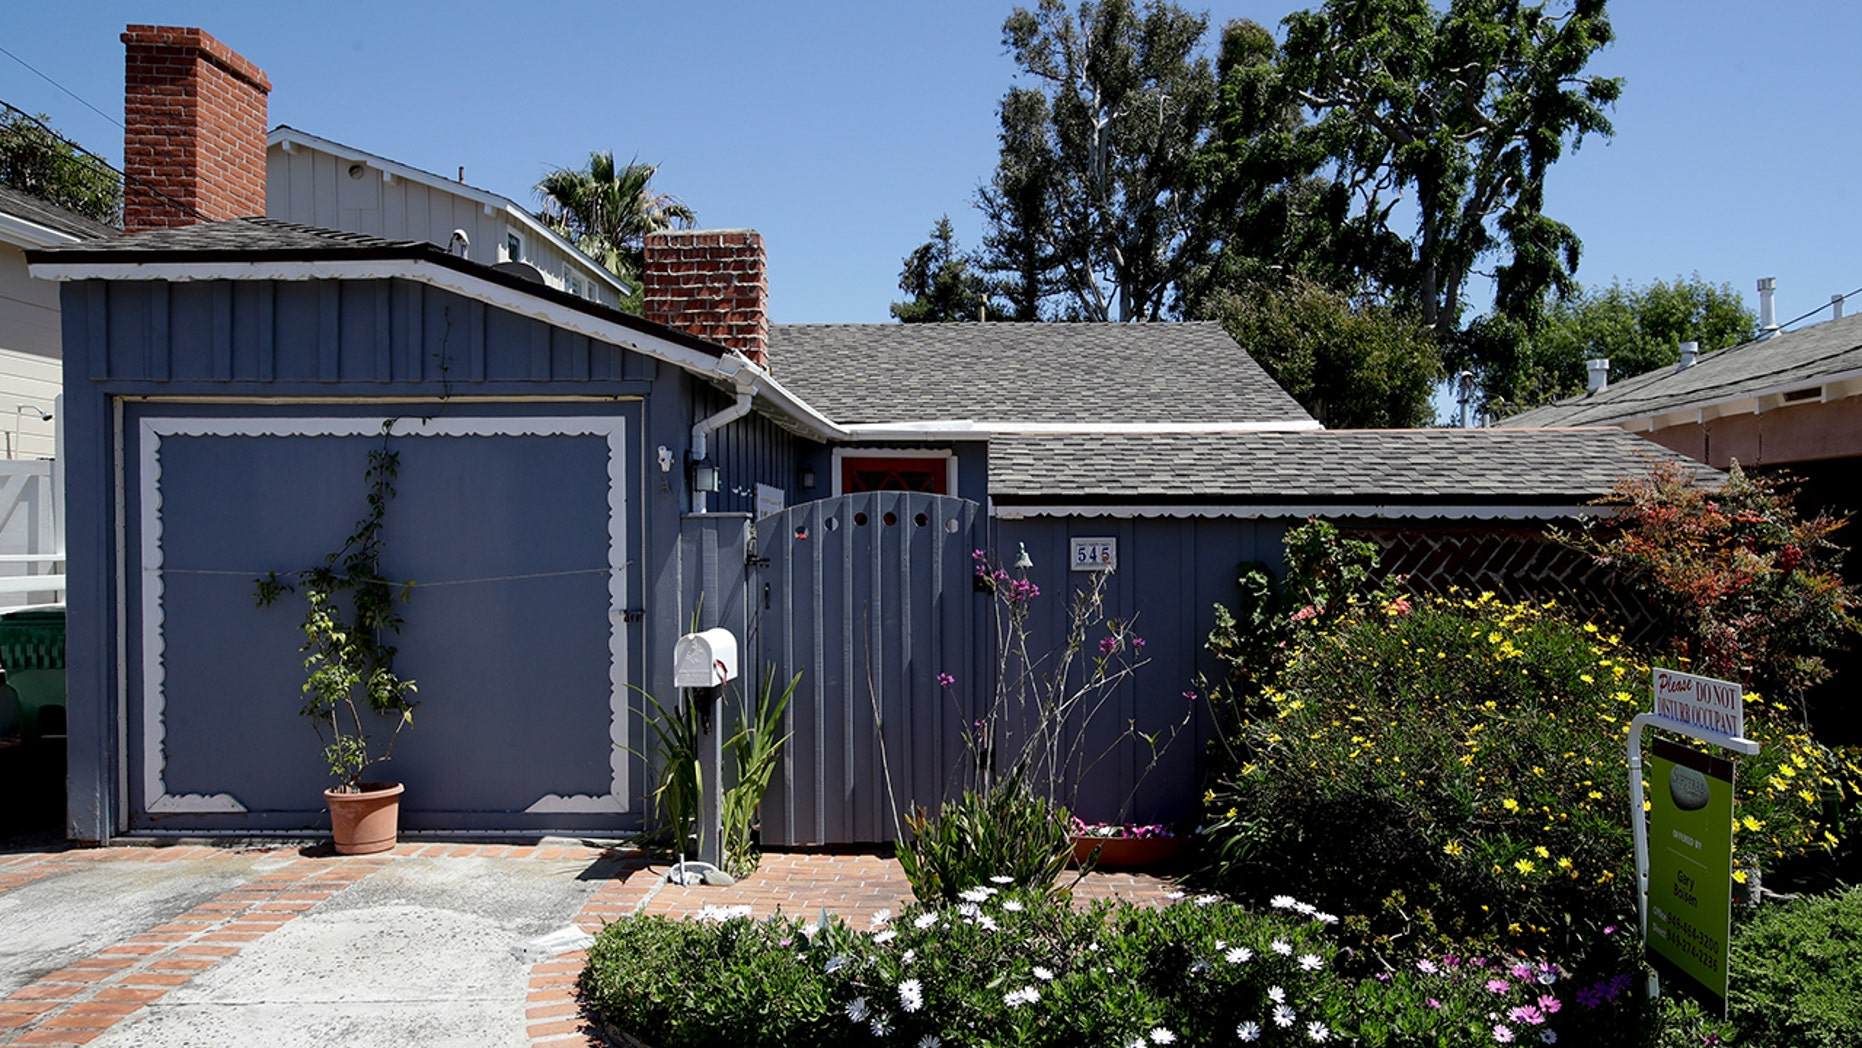 This tiny cottage on Lombardy Lane in Laguna Beach, Calif. is for sale at just shy of $1 millions is shown Friday, May 25, 2018. This one bedroom home is 595 square feet and is a few blocks from the ocean